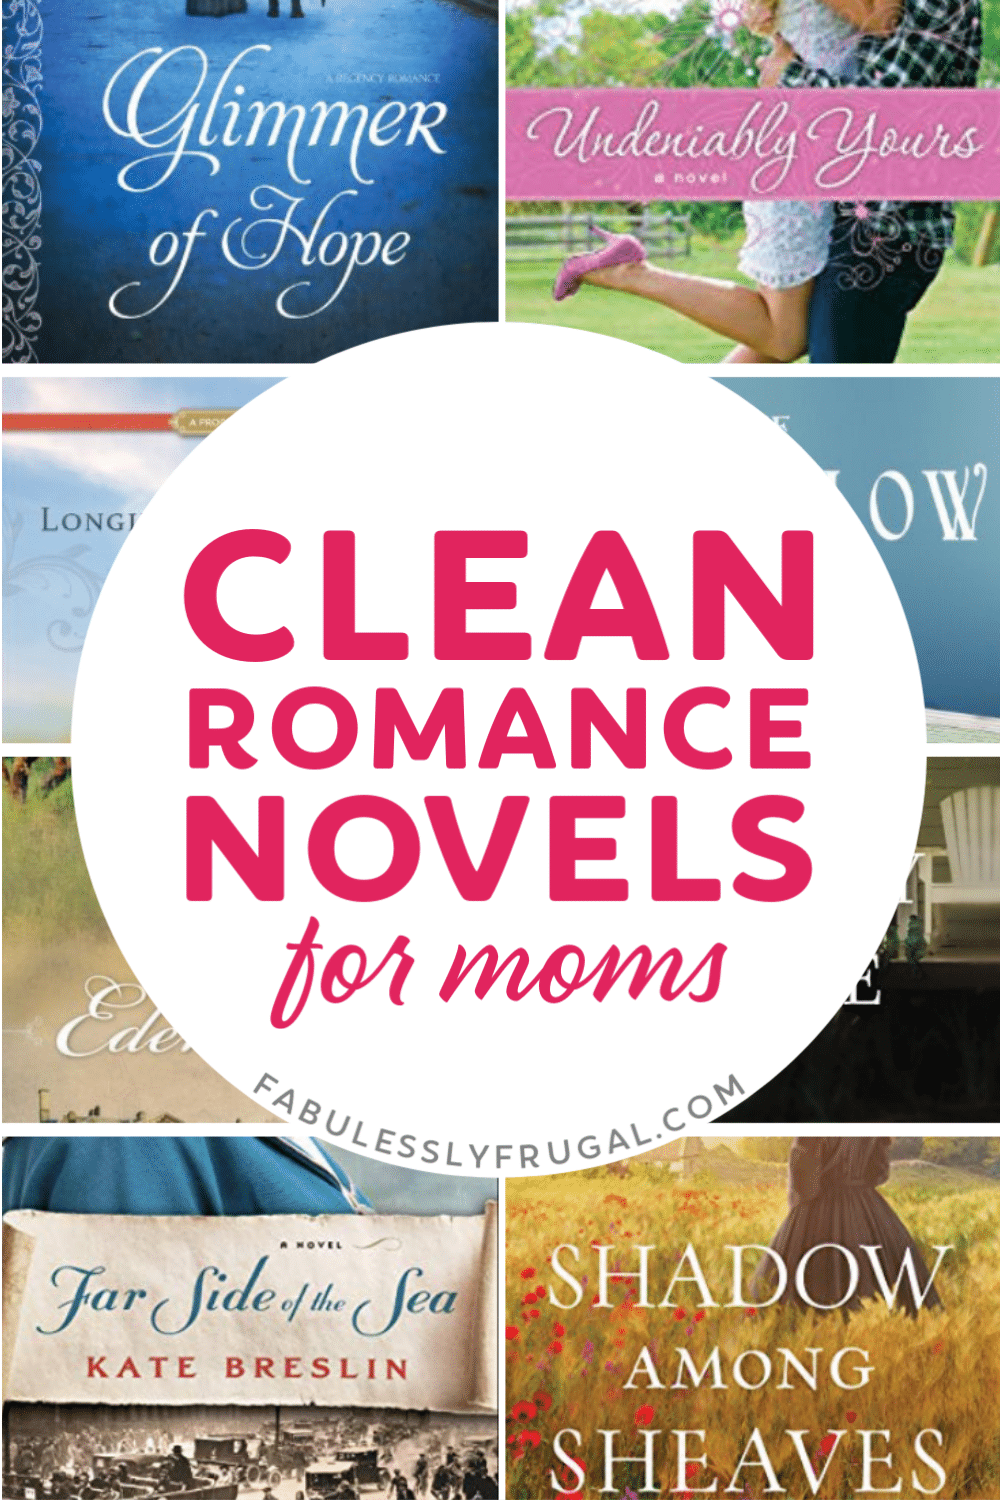 Clean romance novels for moms